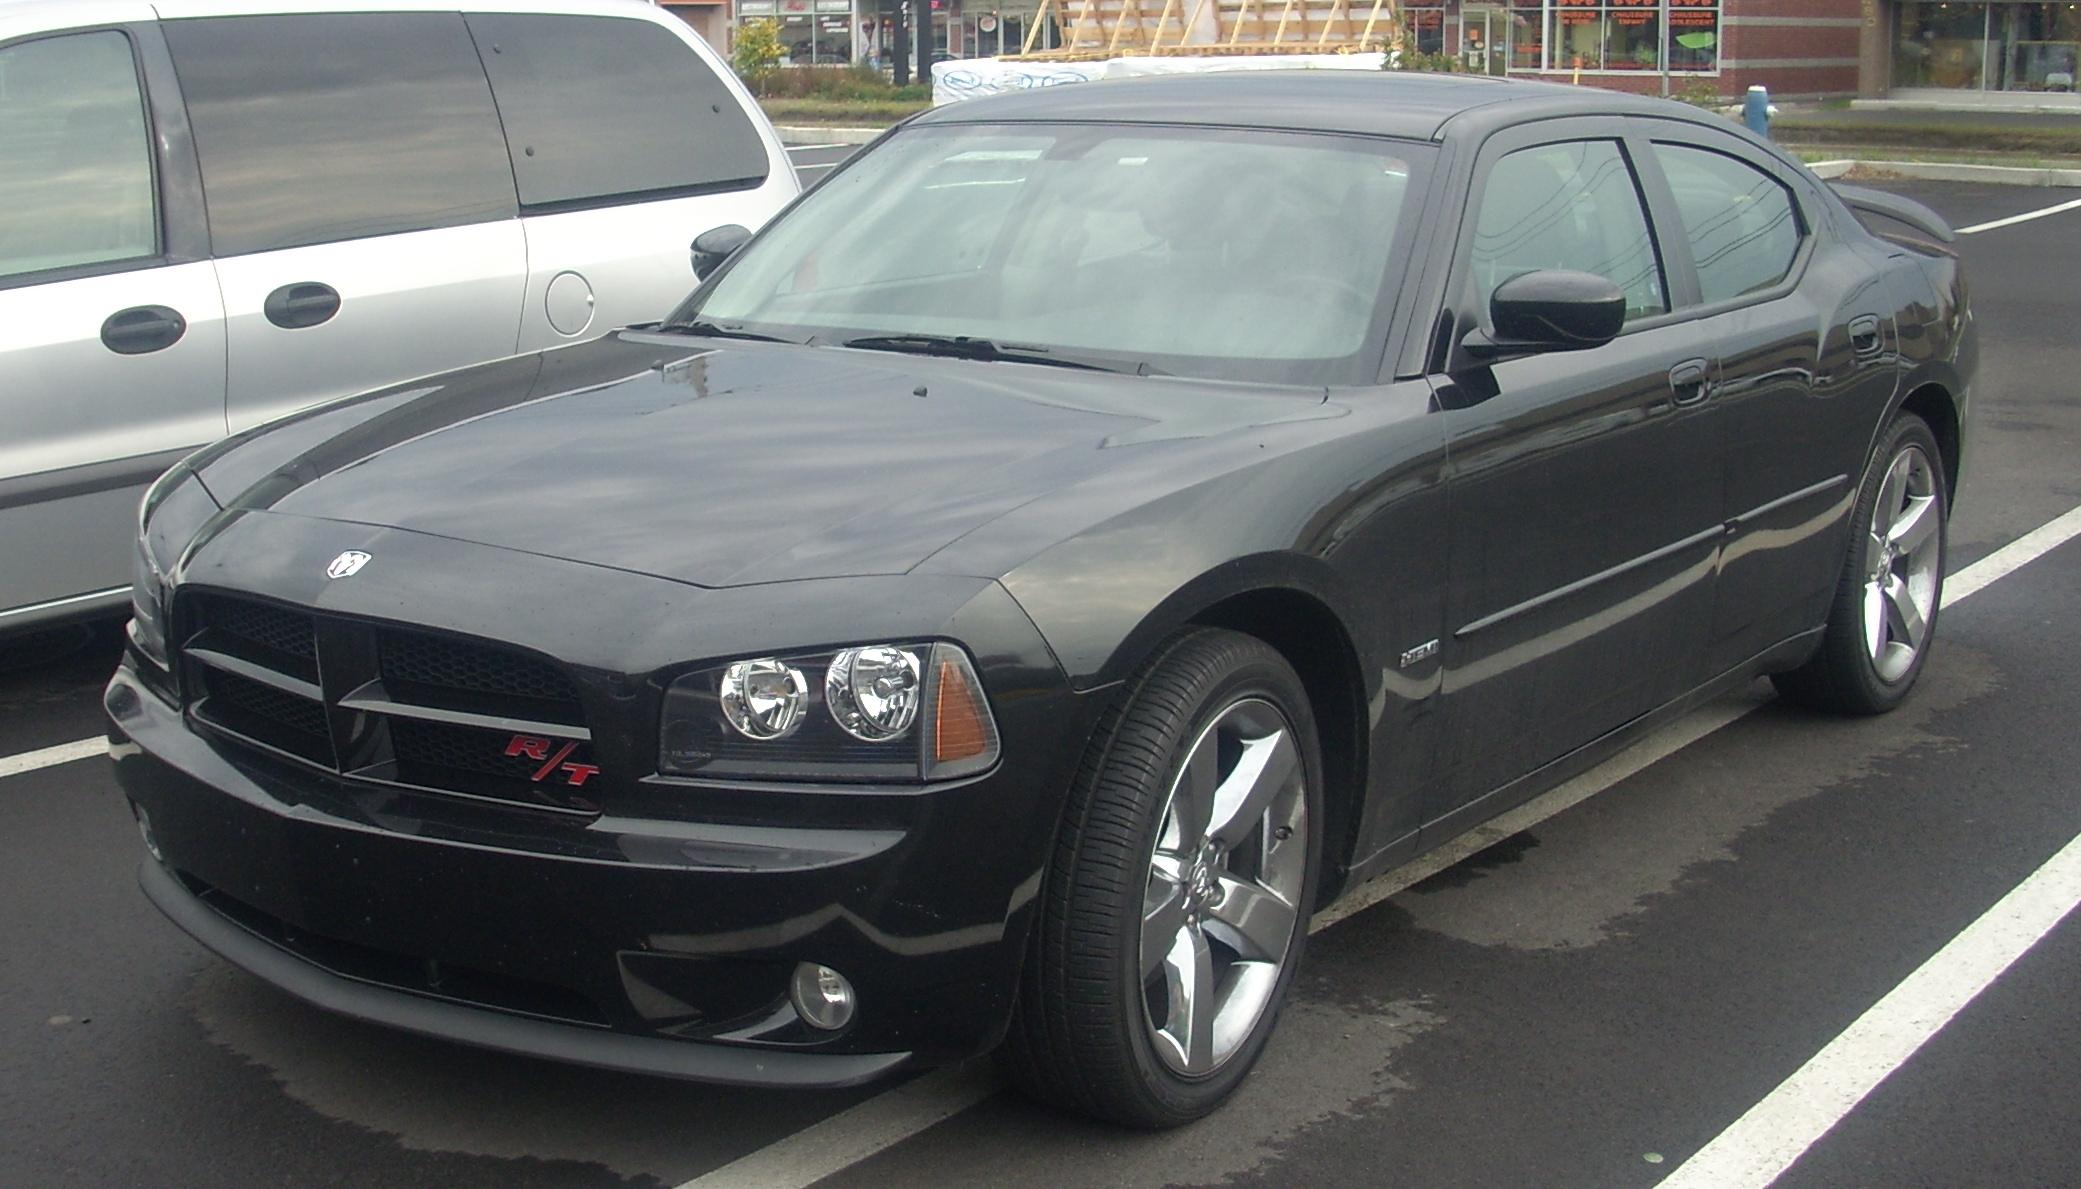 file dodge charger r t hemi jpg